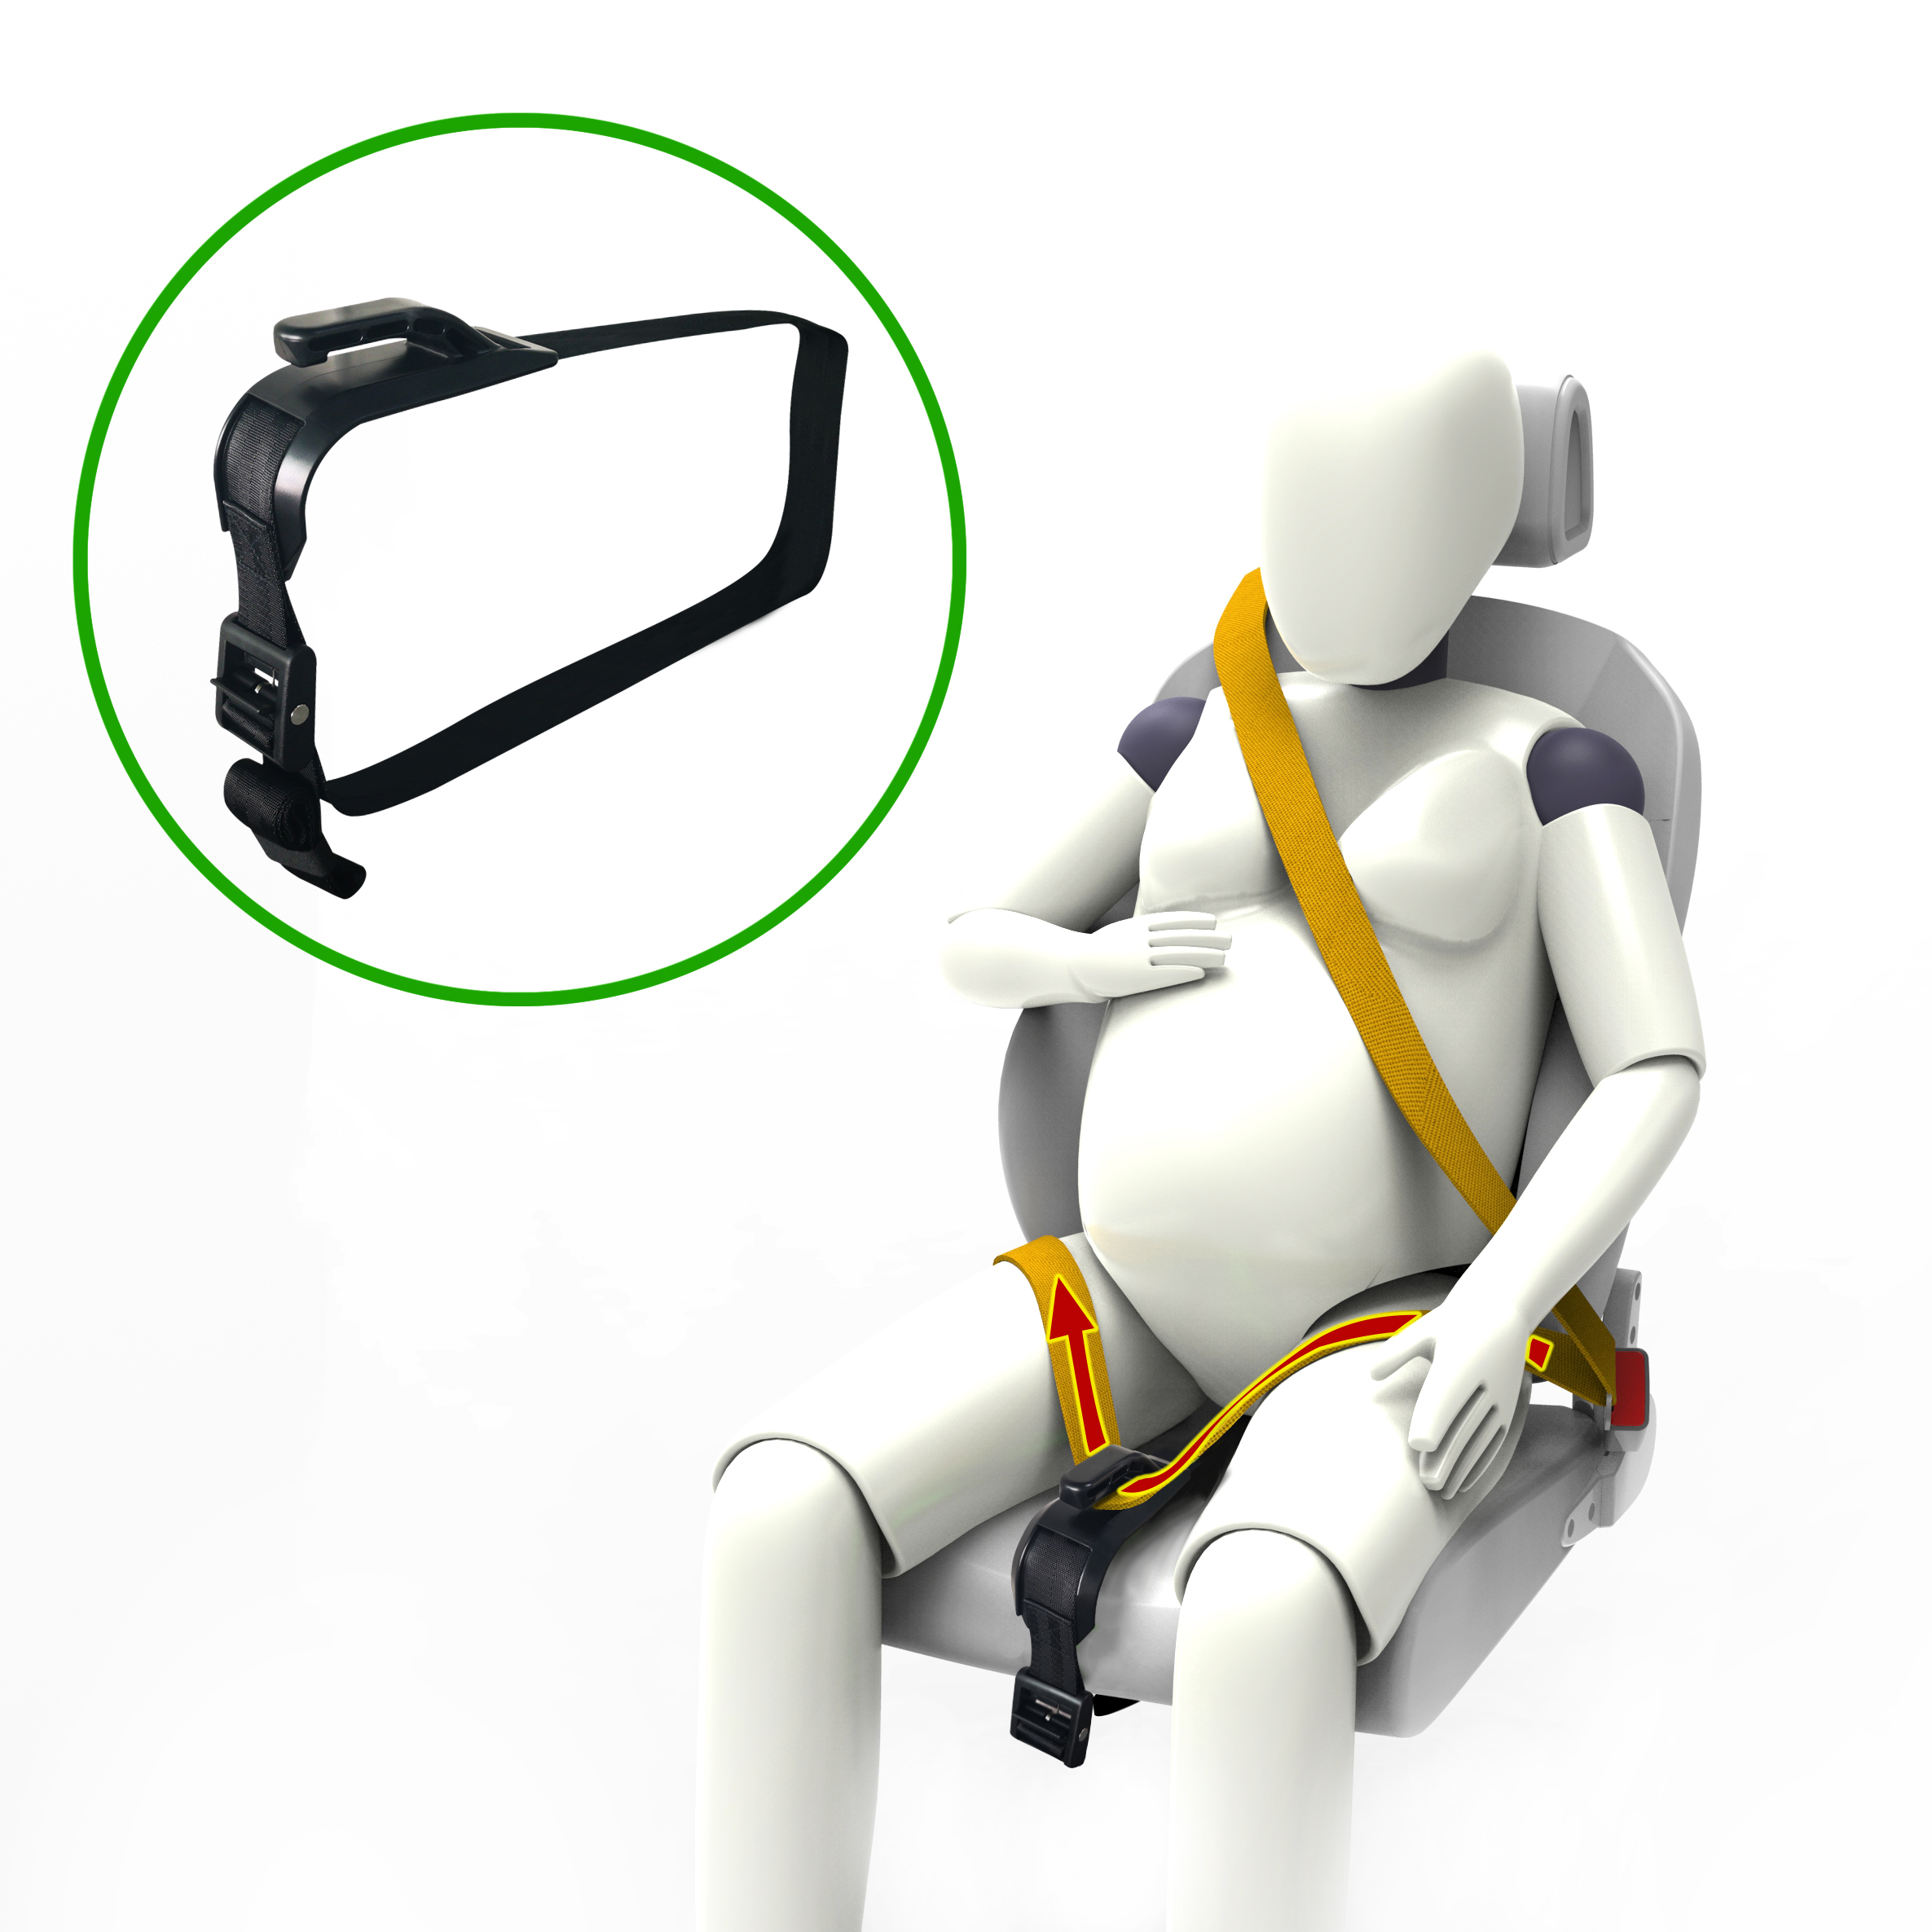 Pregnant Car Seat Belt Adjuster,Comfort And Safety For Maternity Moms Belly,Protect Unborn Baby,free Shipping